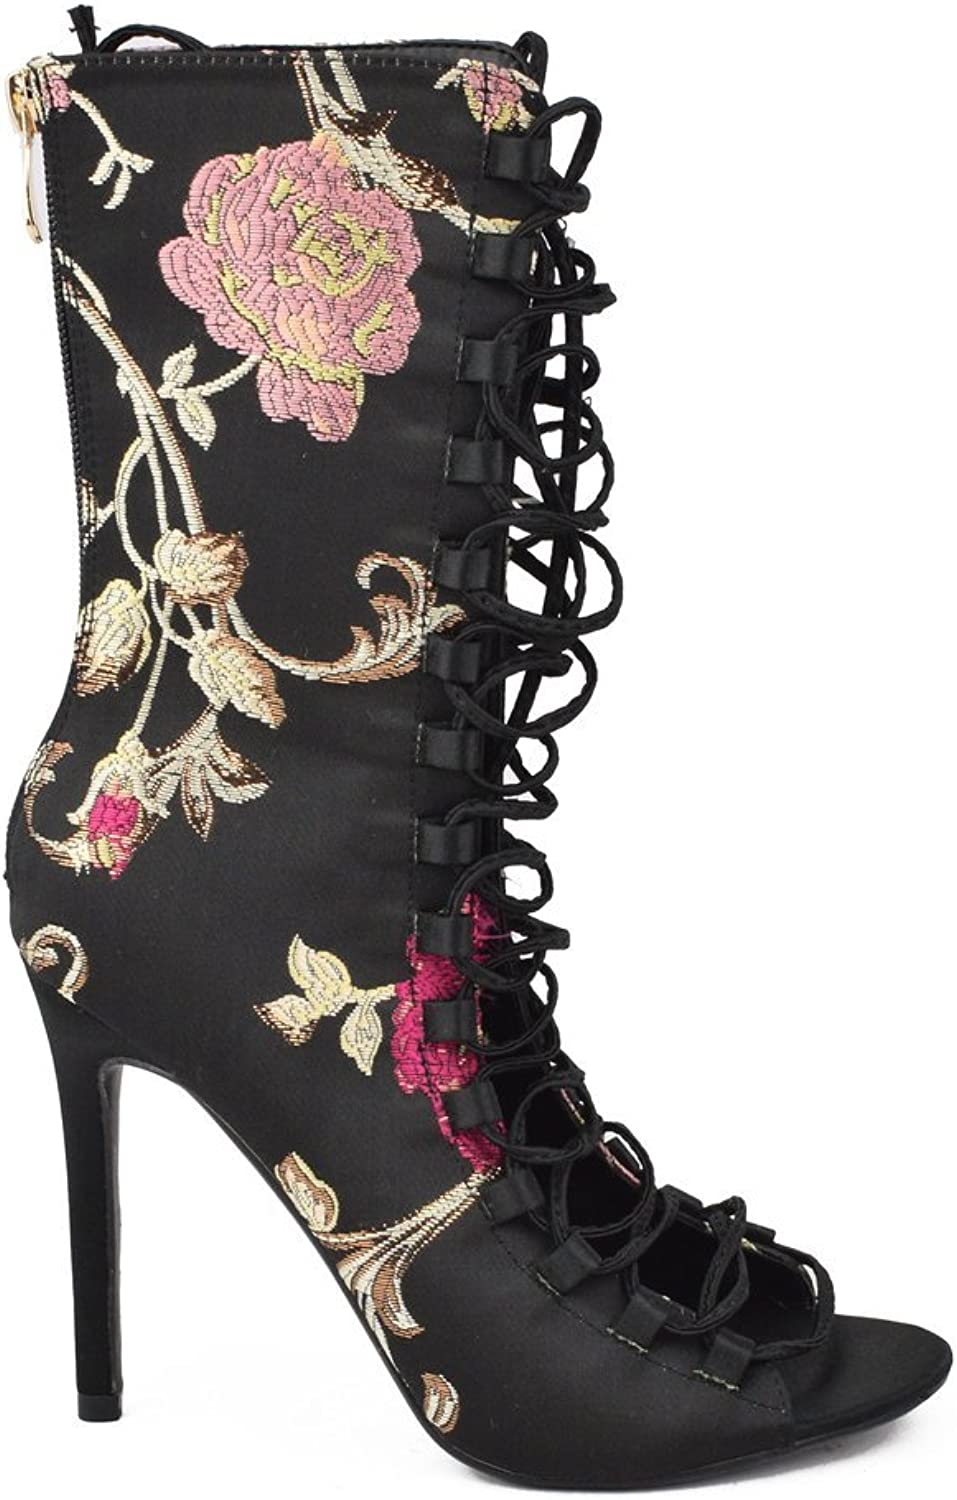 Floral Embroidered Lace up Satin Fabric Boot Black